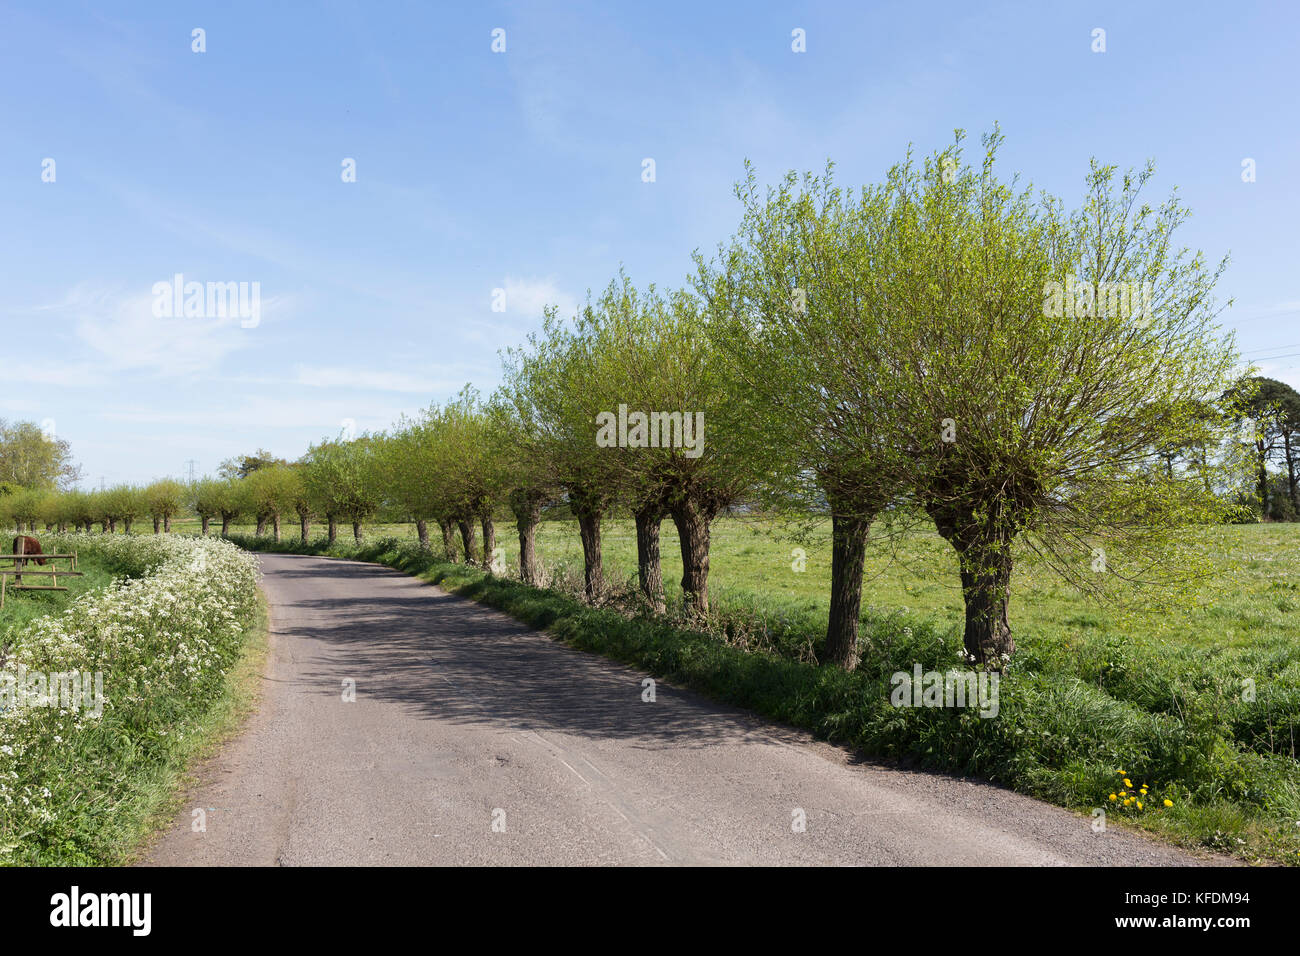 Pollarded Willows along country road, Somerset Levels, UK - Stock Image